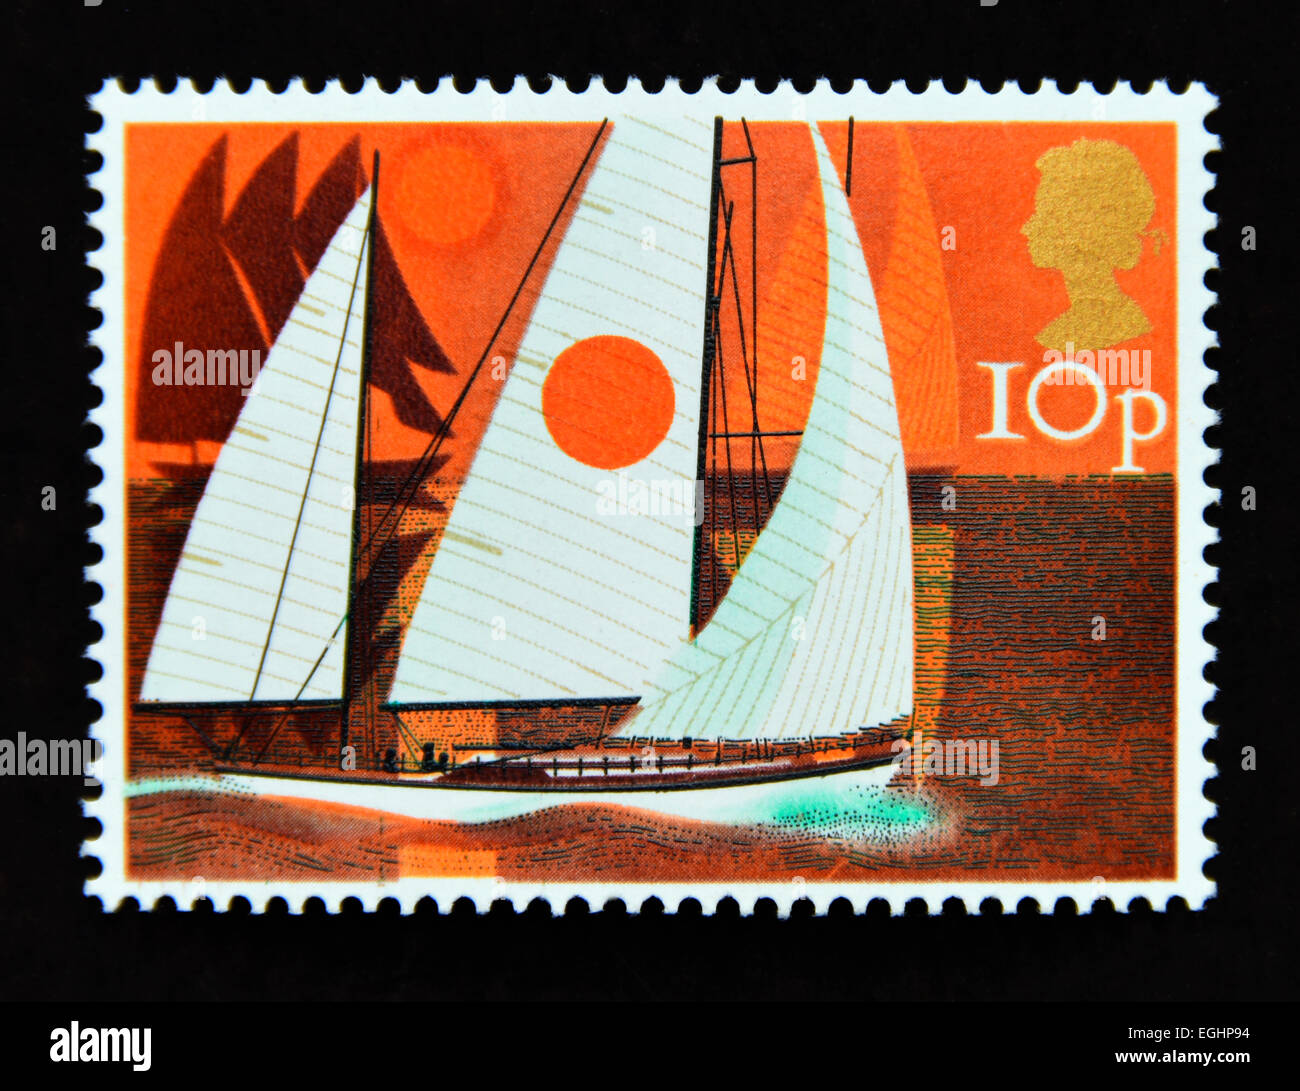 Postage stamp. Great Britain. Queen Elizabeth II. 1975. Sailing. Cruising Yachts. 10p. - Stock Image